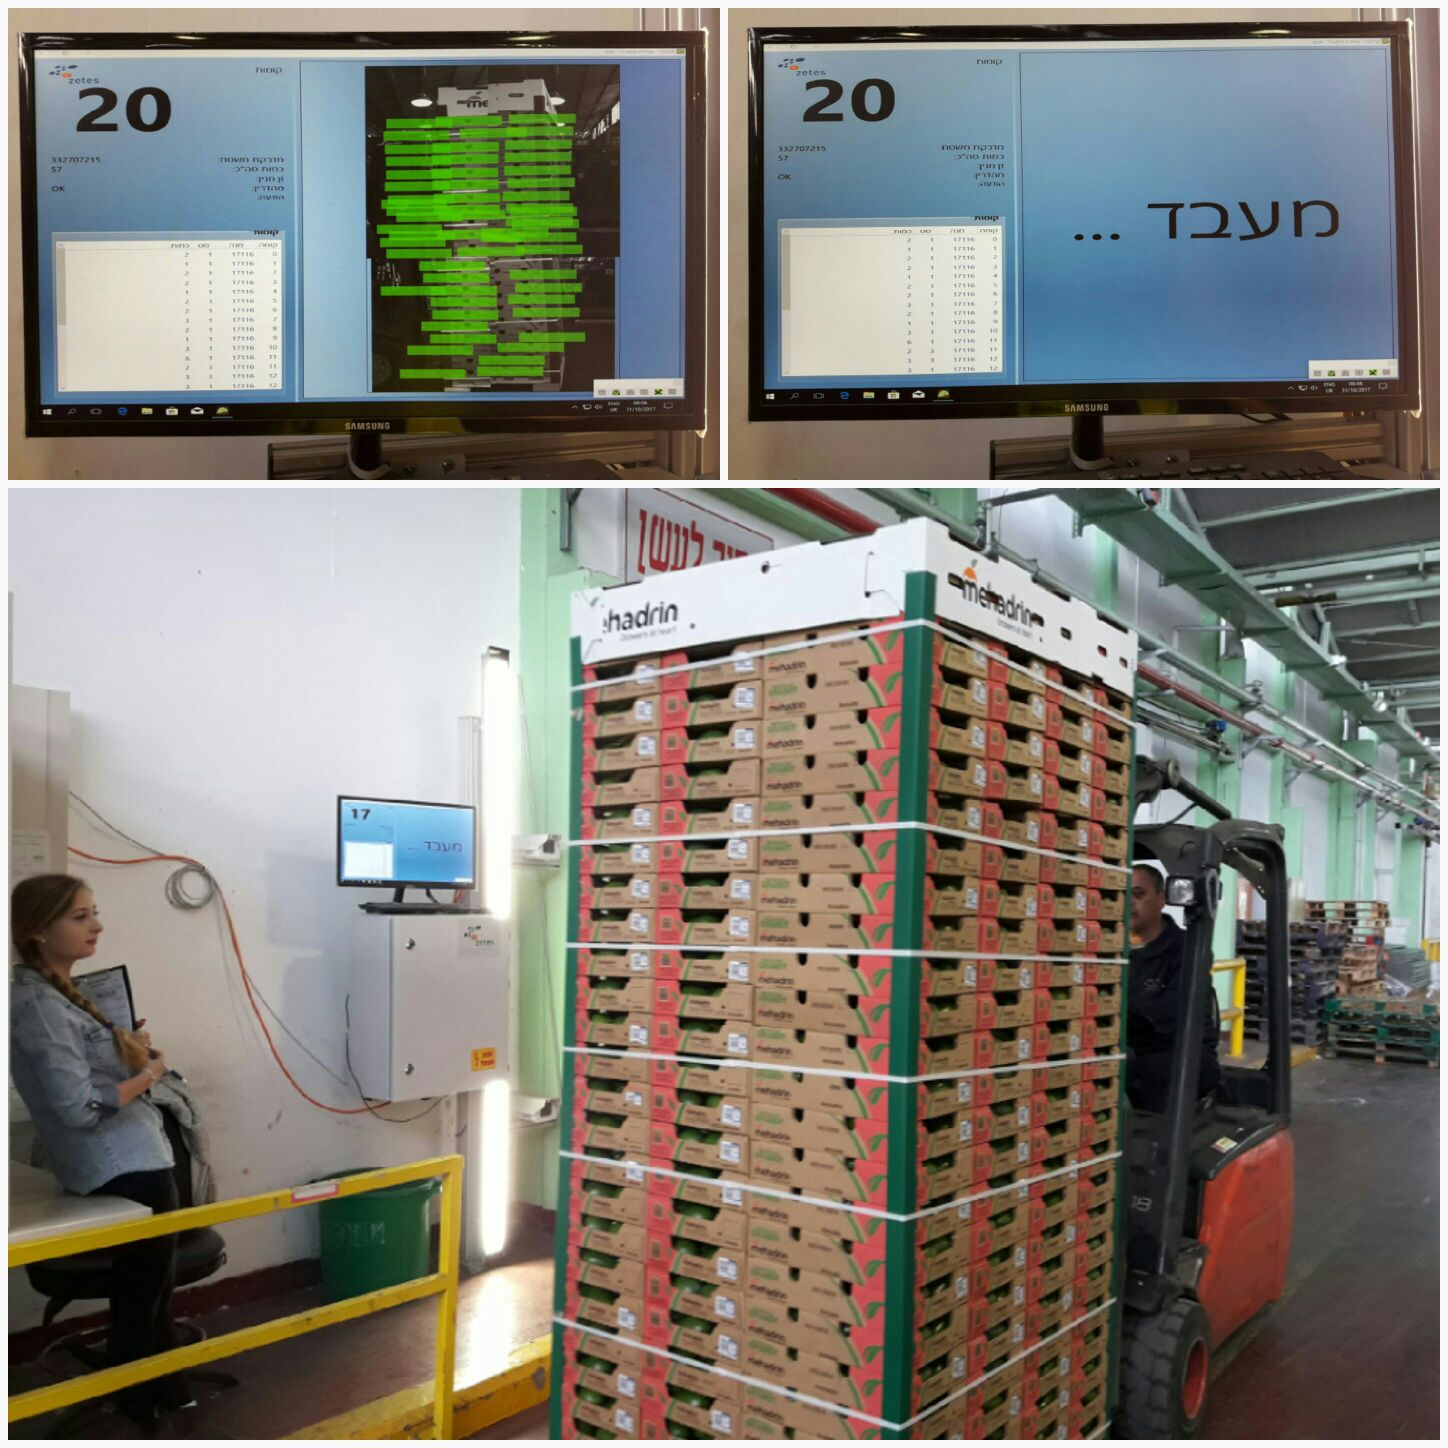 Palletisation software to achieve accuracy and visibility